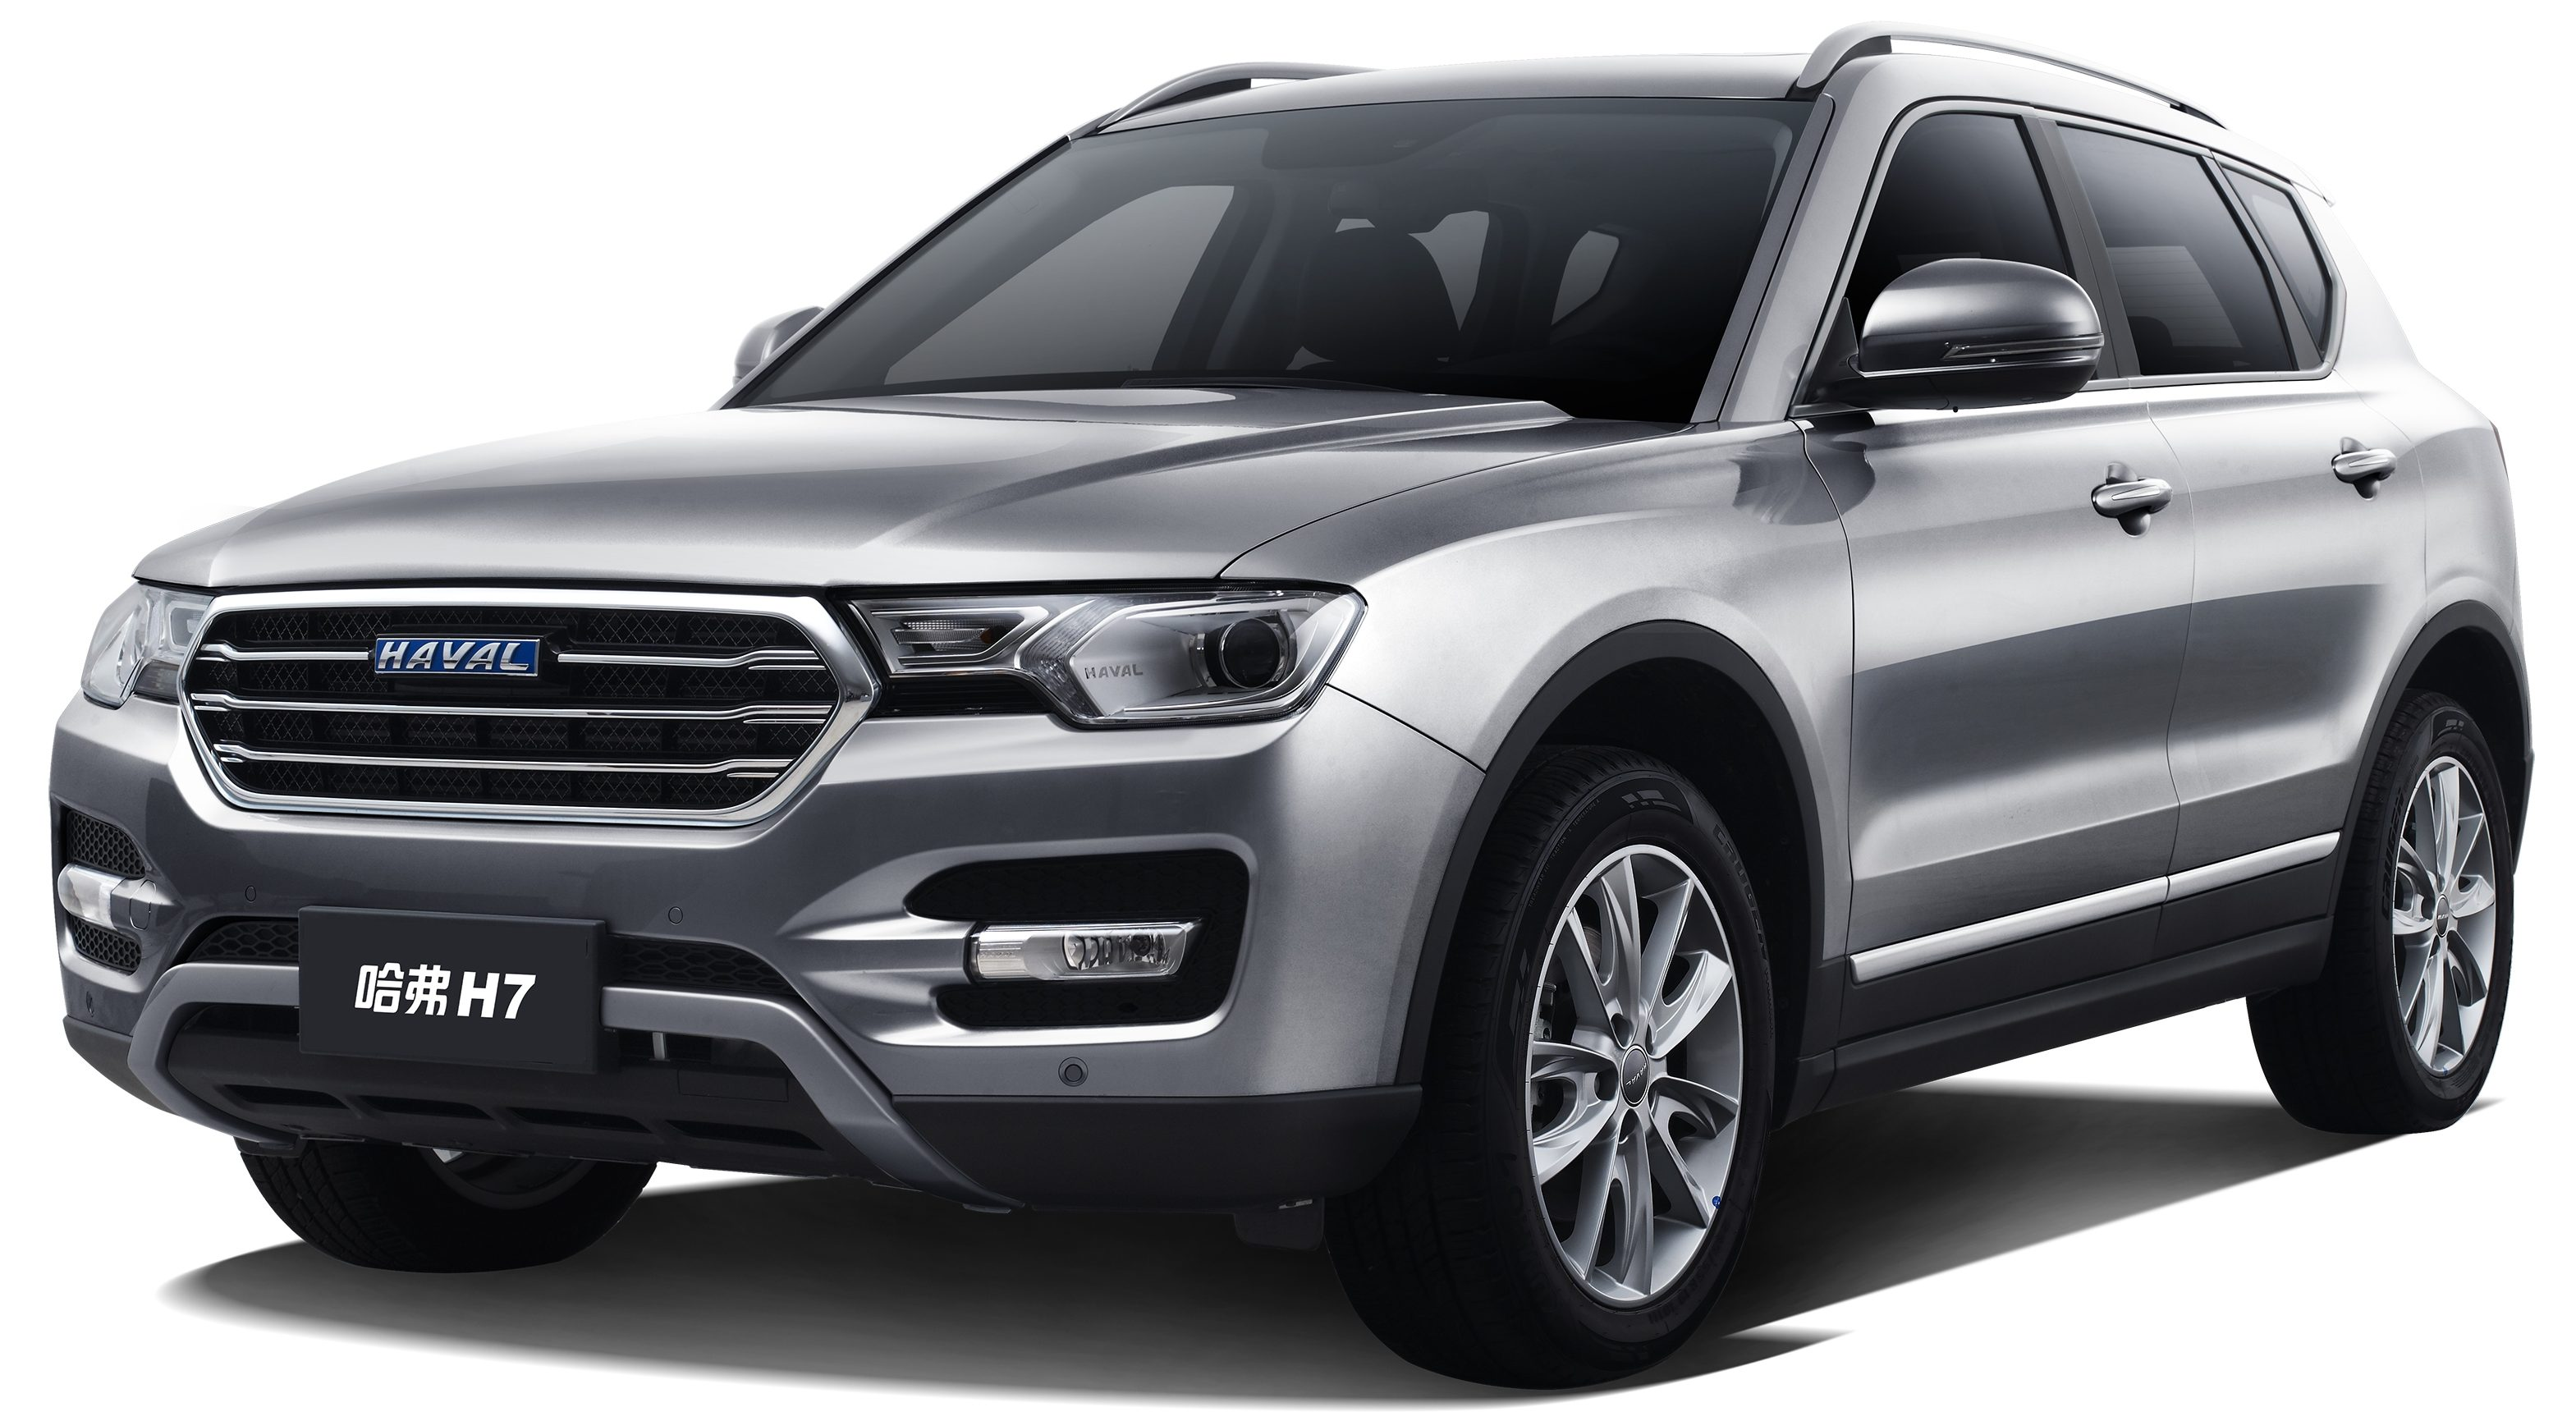 Suv >> Haval H7 – production version set for market debut Paul Tan - Image 479769